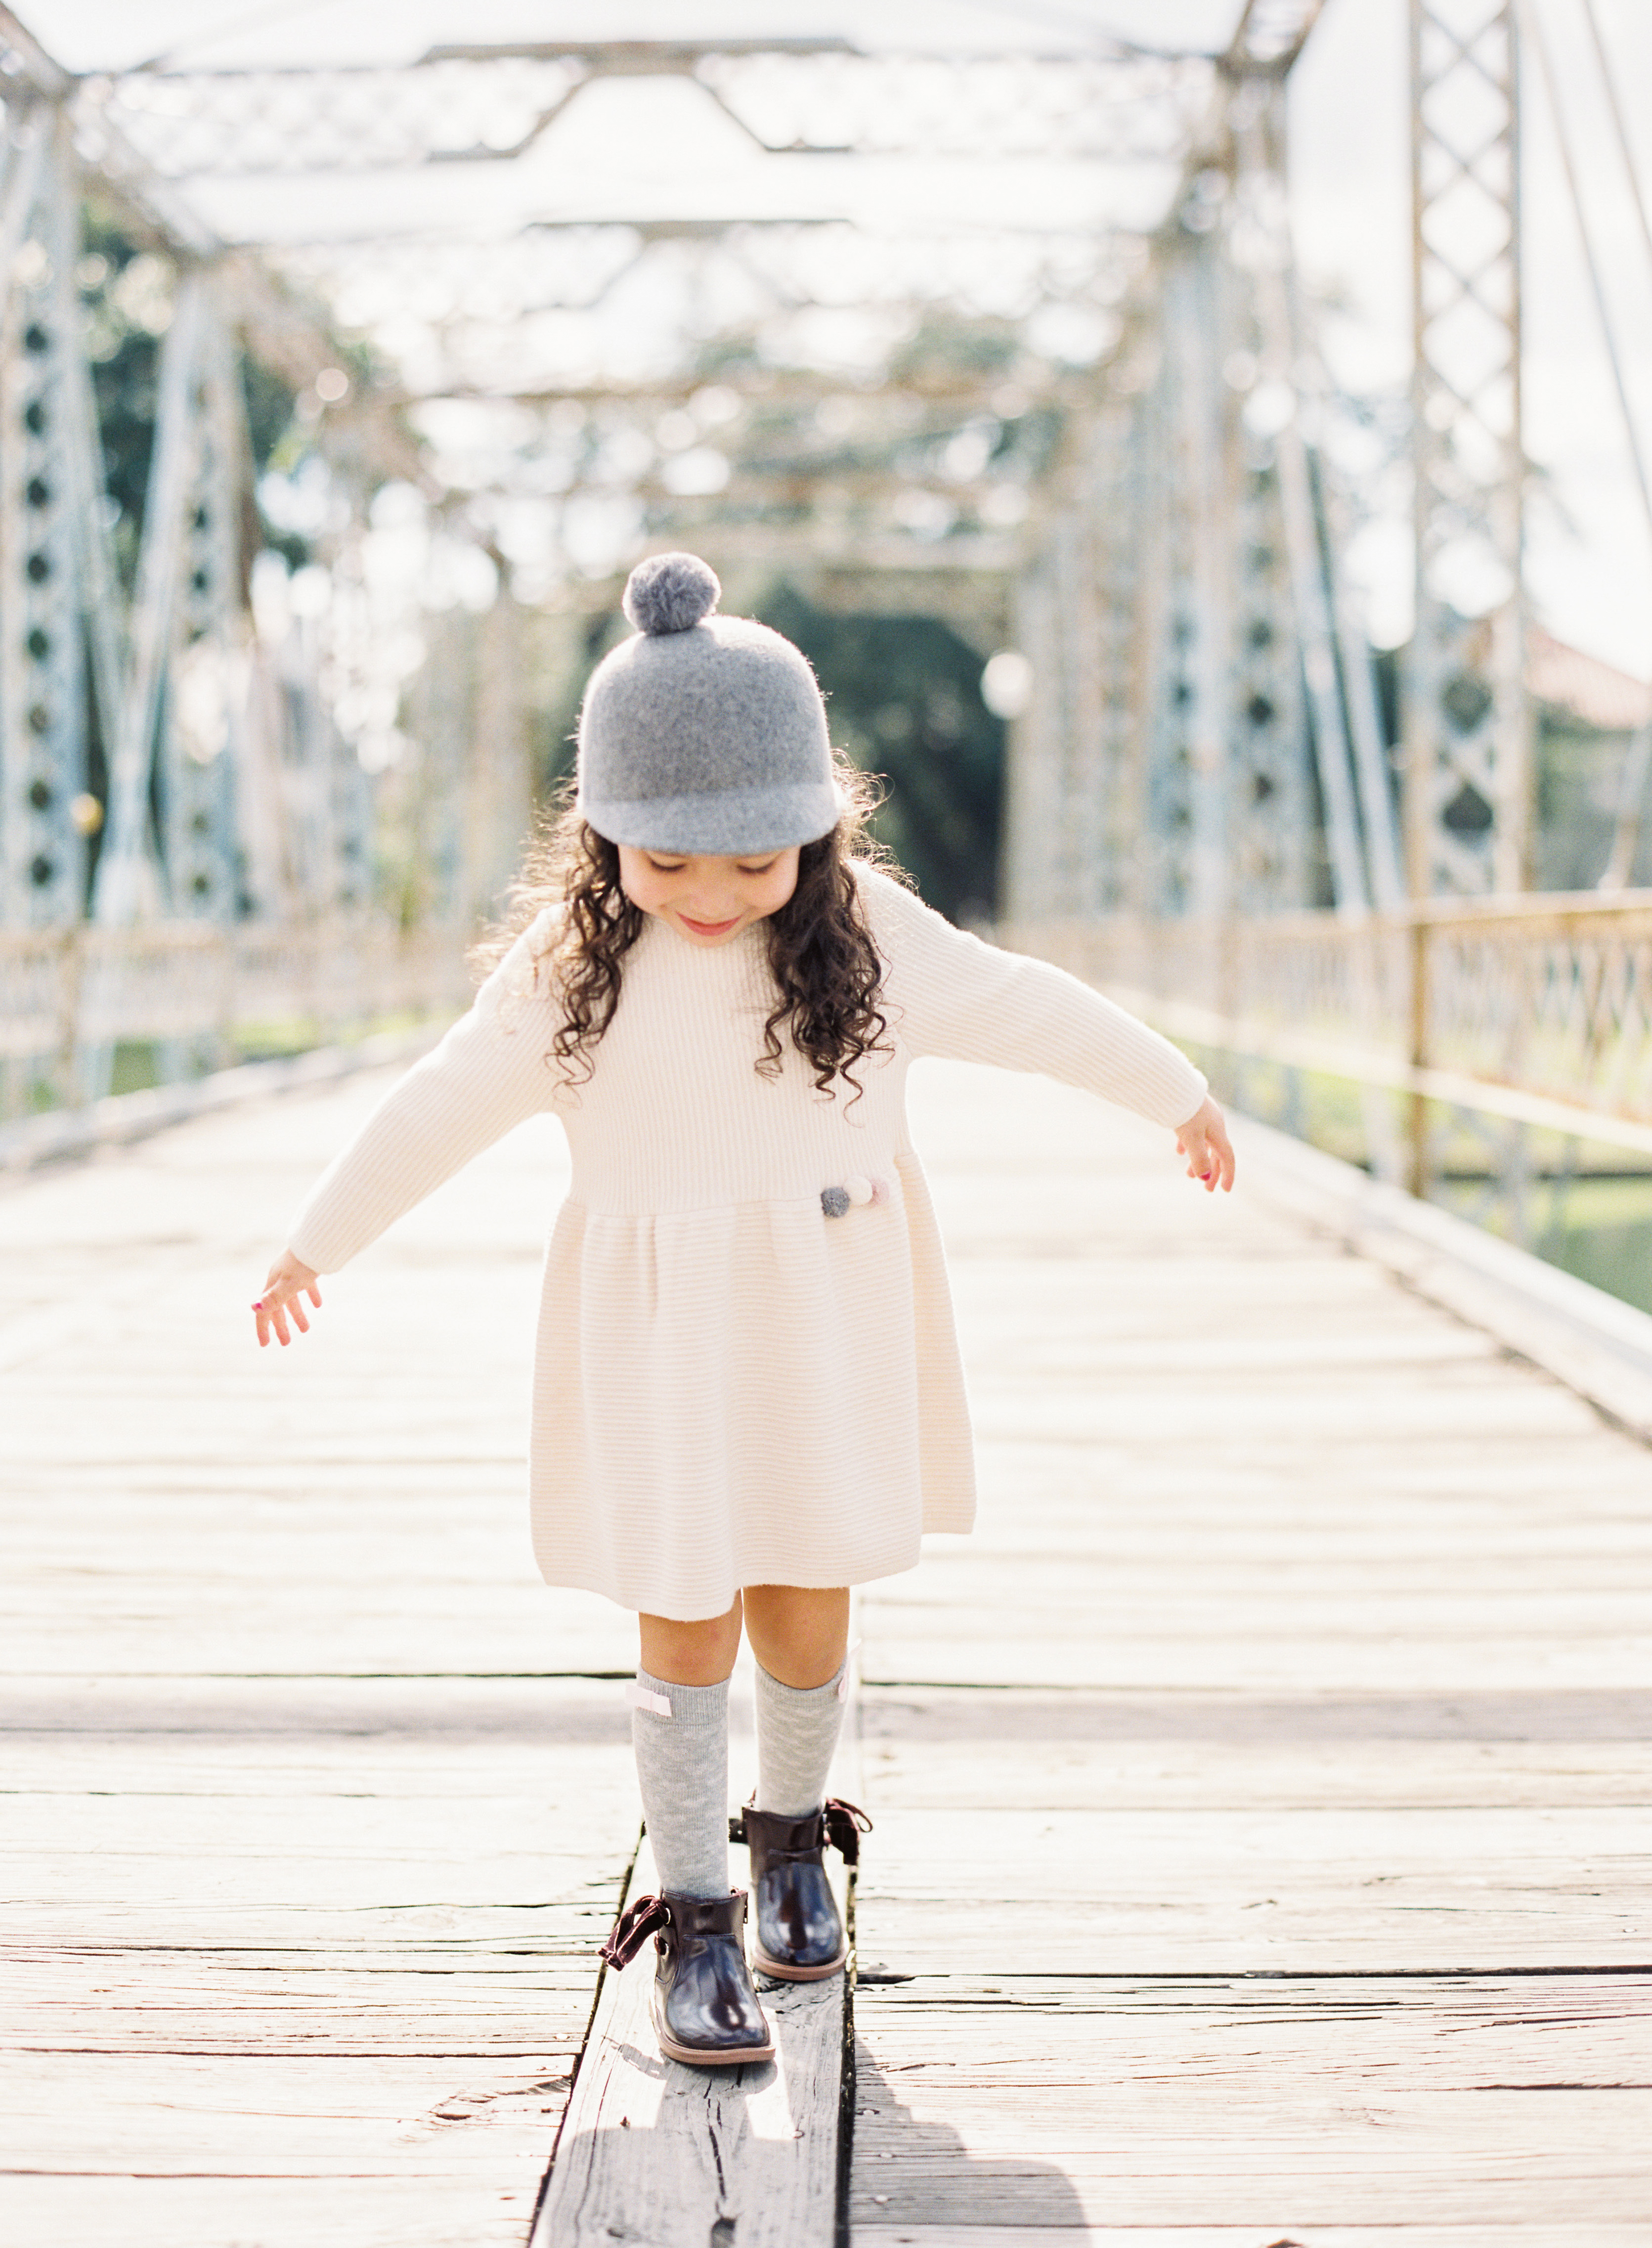 poses, what to wear, outdoor, ideas, with toddler, park, style, fashion, sisters